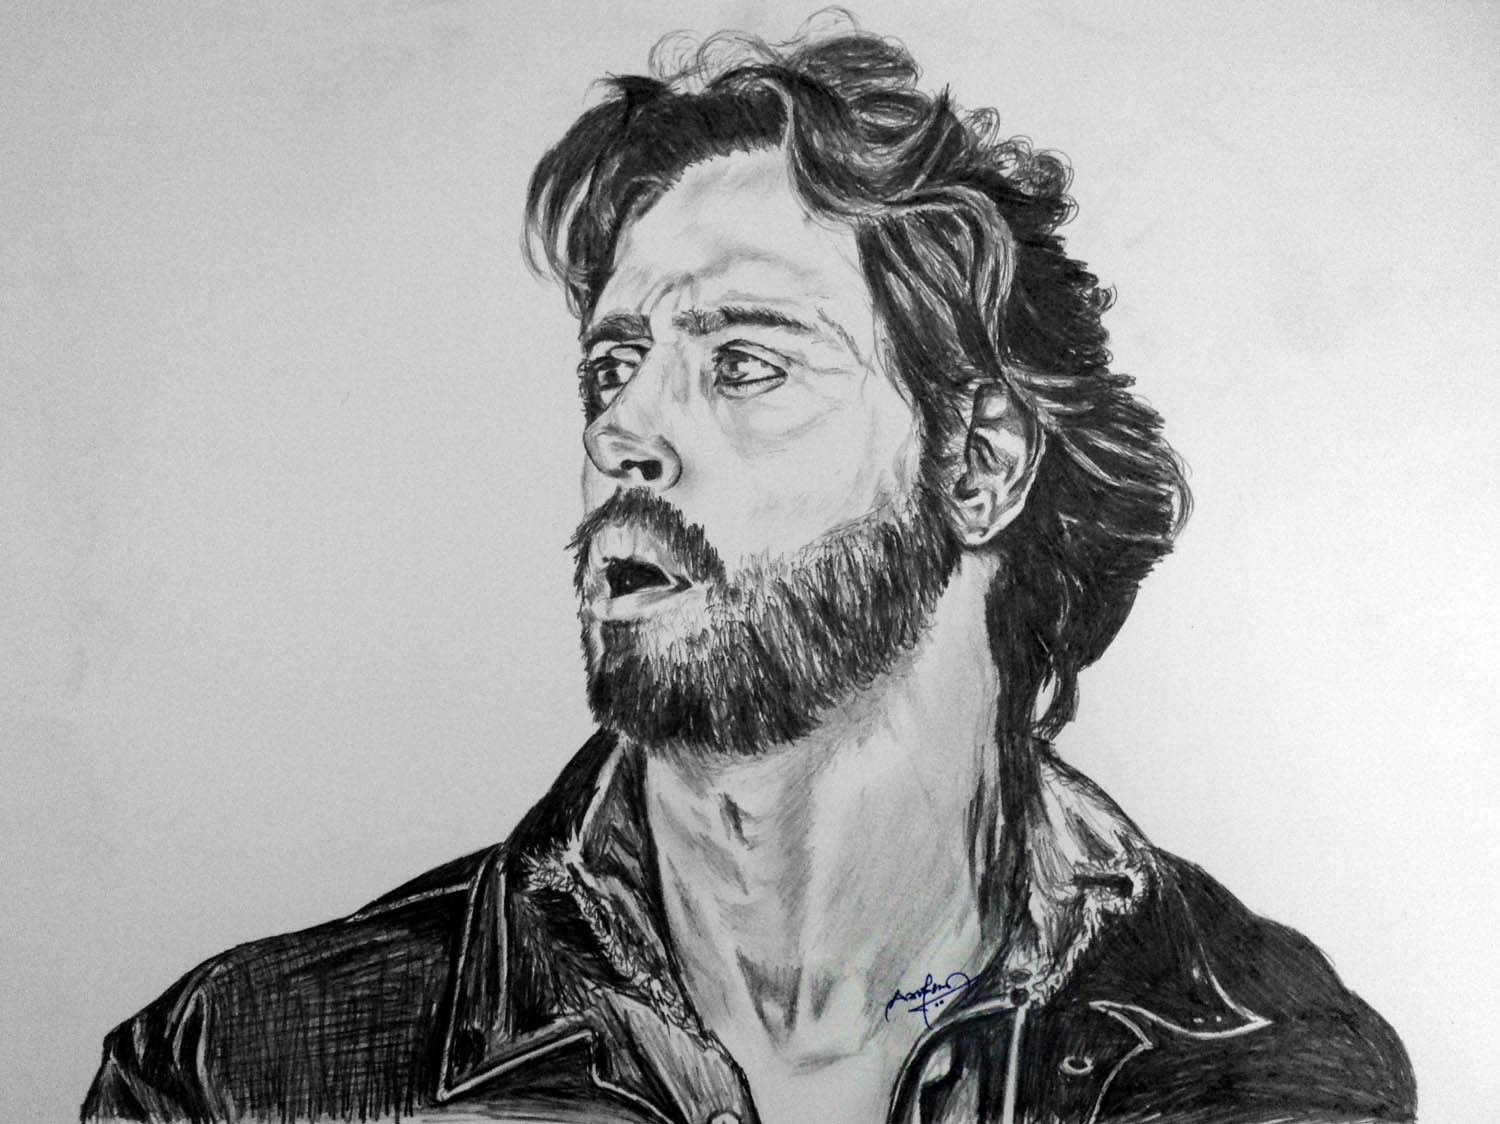 Hrithik Roshan pencil drawing sketch